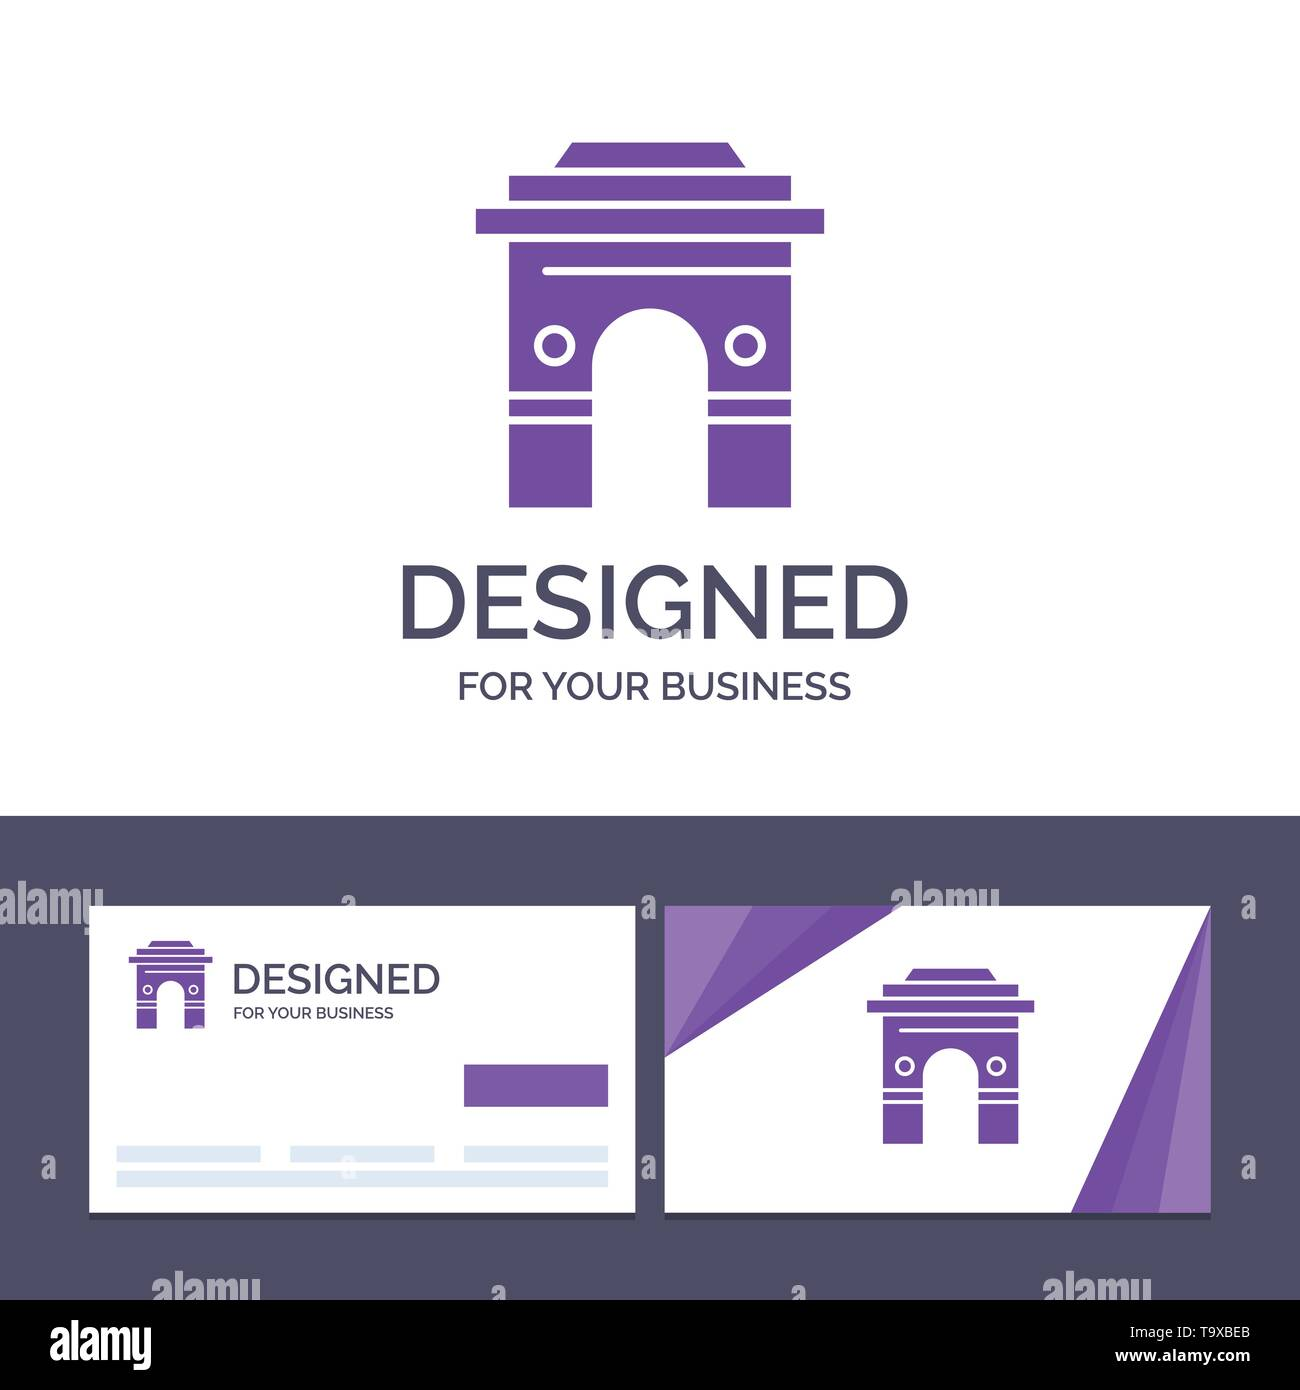 Creative Business Card and Logo template Culture, Global, Hinduism, India, Indian, Srilanka, Temple Vector Illustration - Stock Image